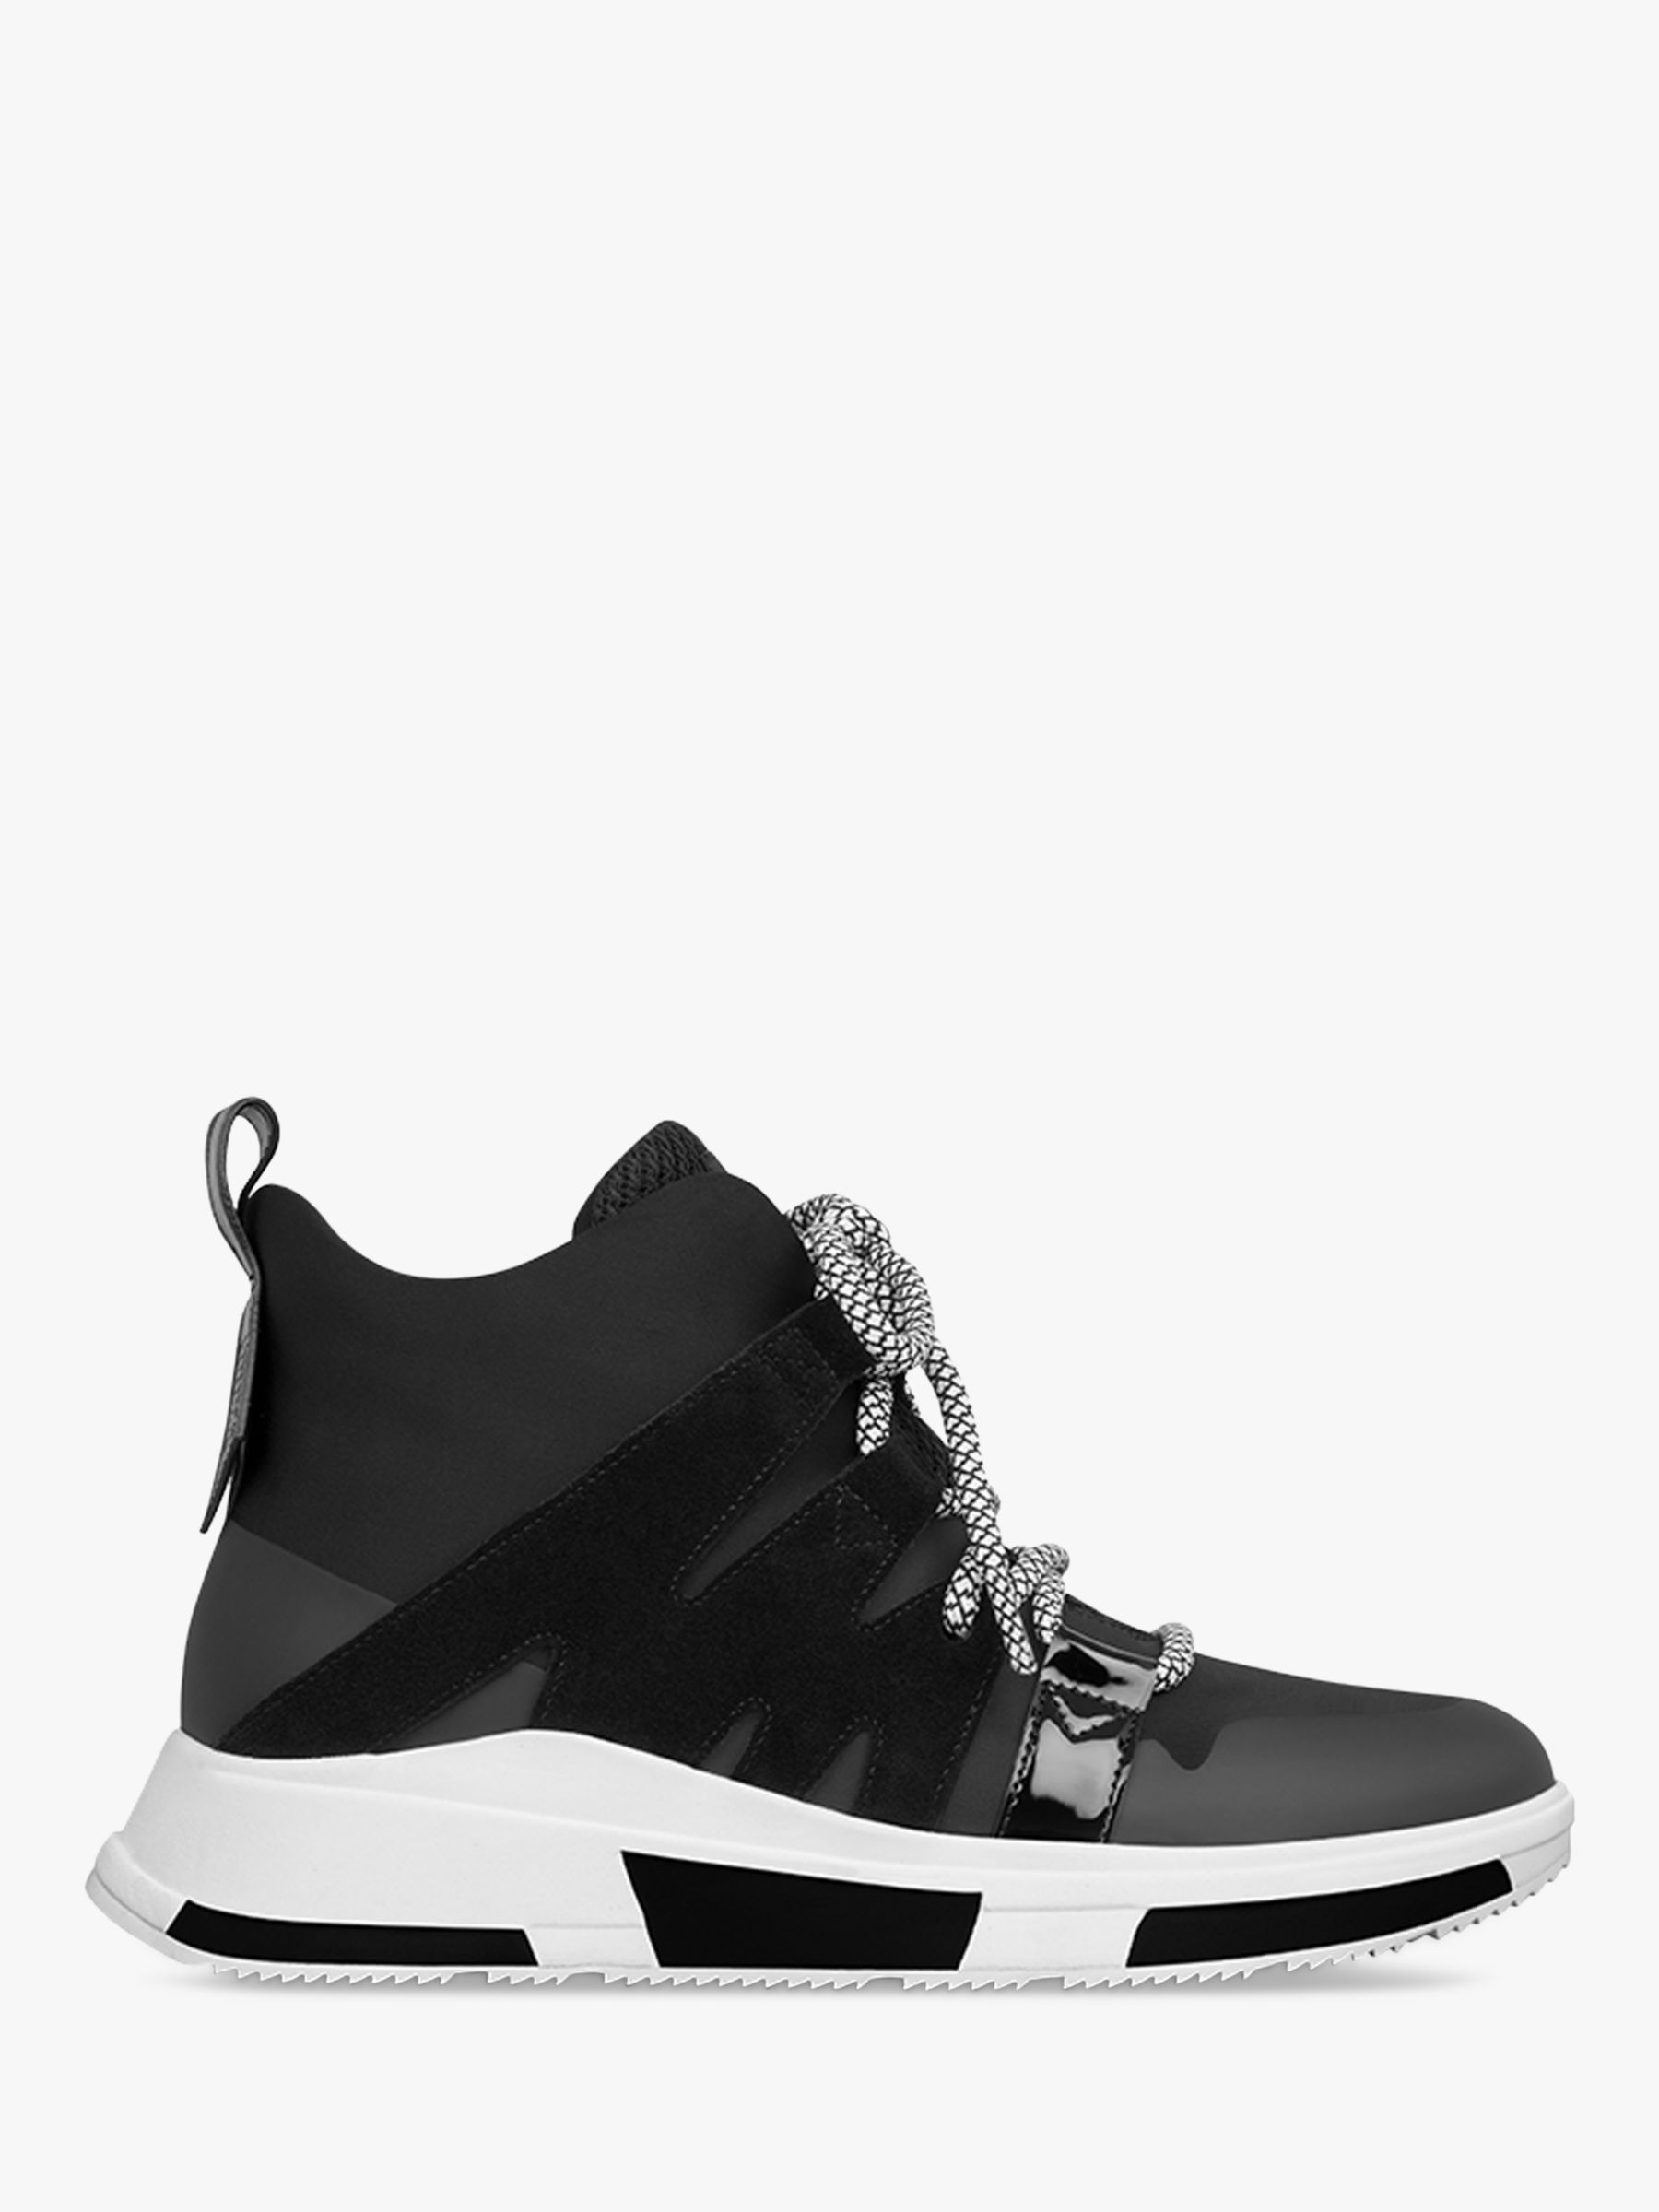 Fitflop FitFlop Carita High Top Trainers, Black